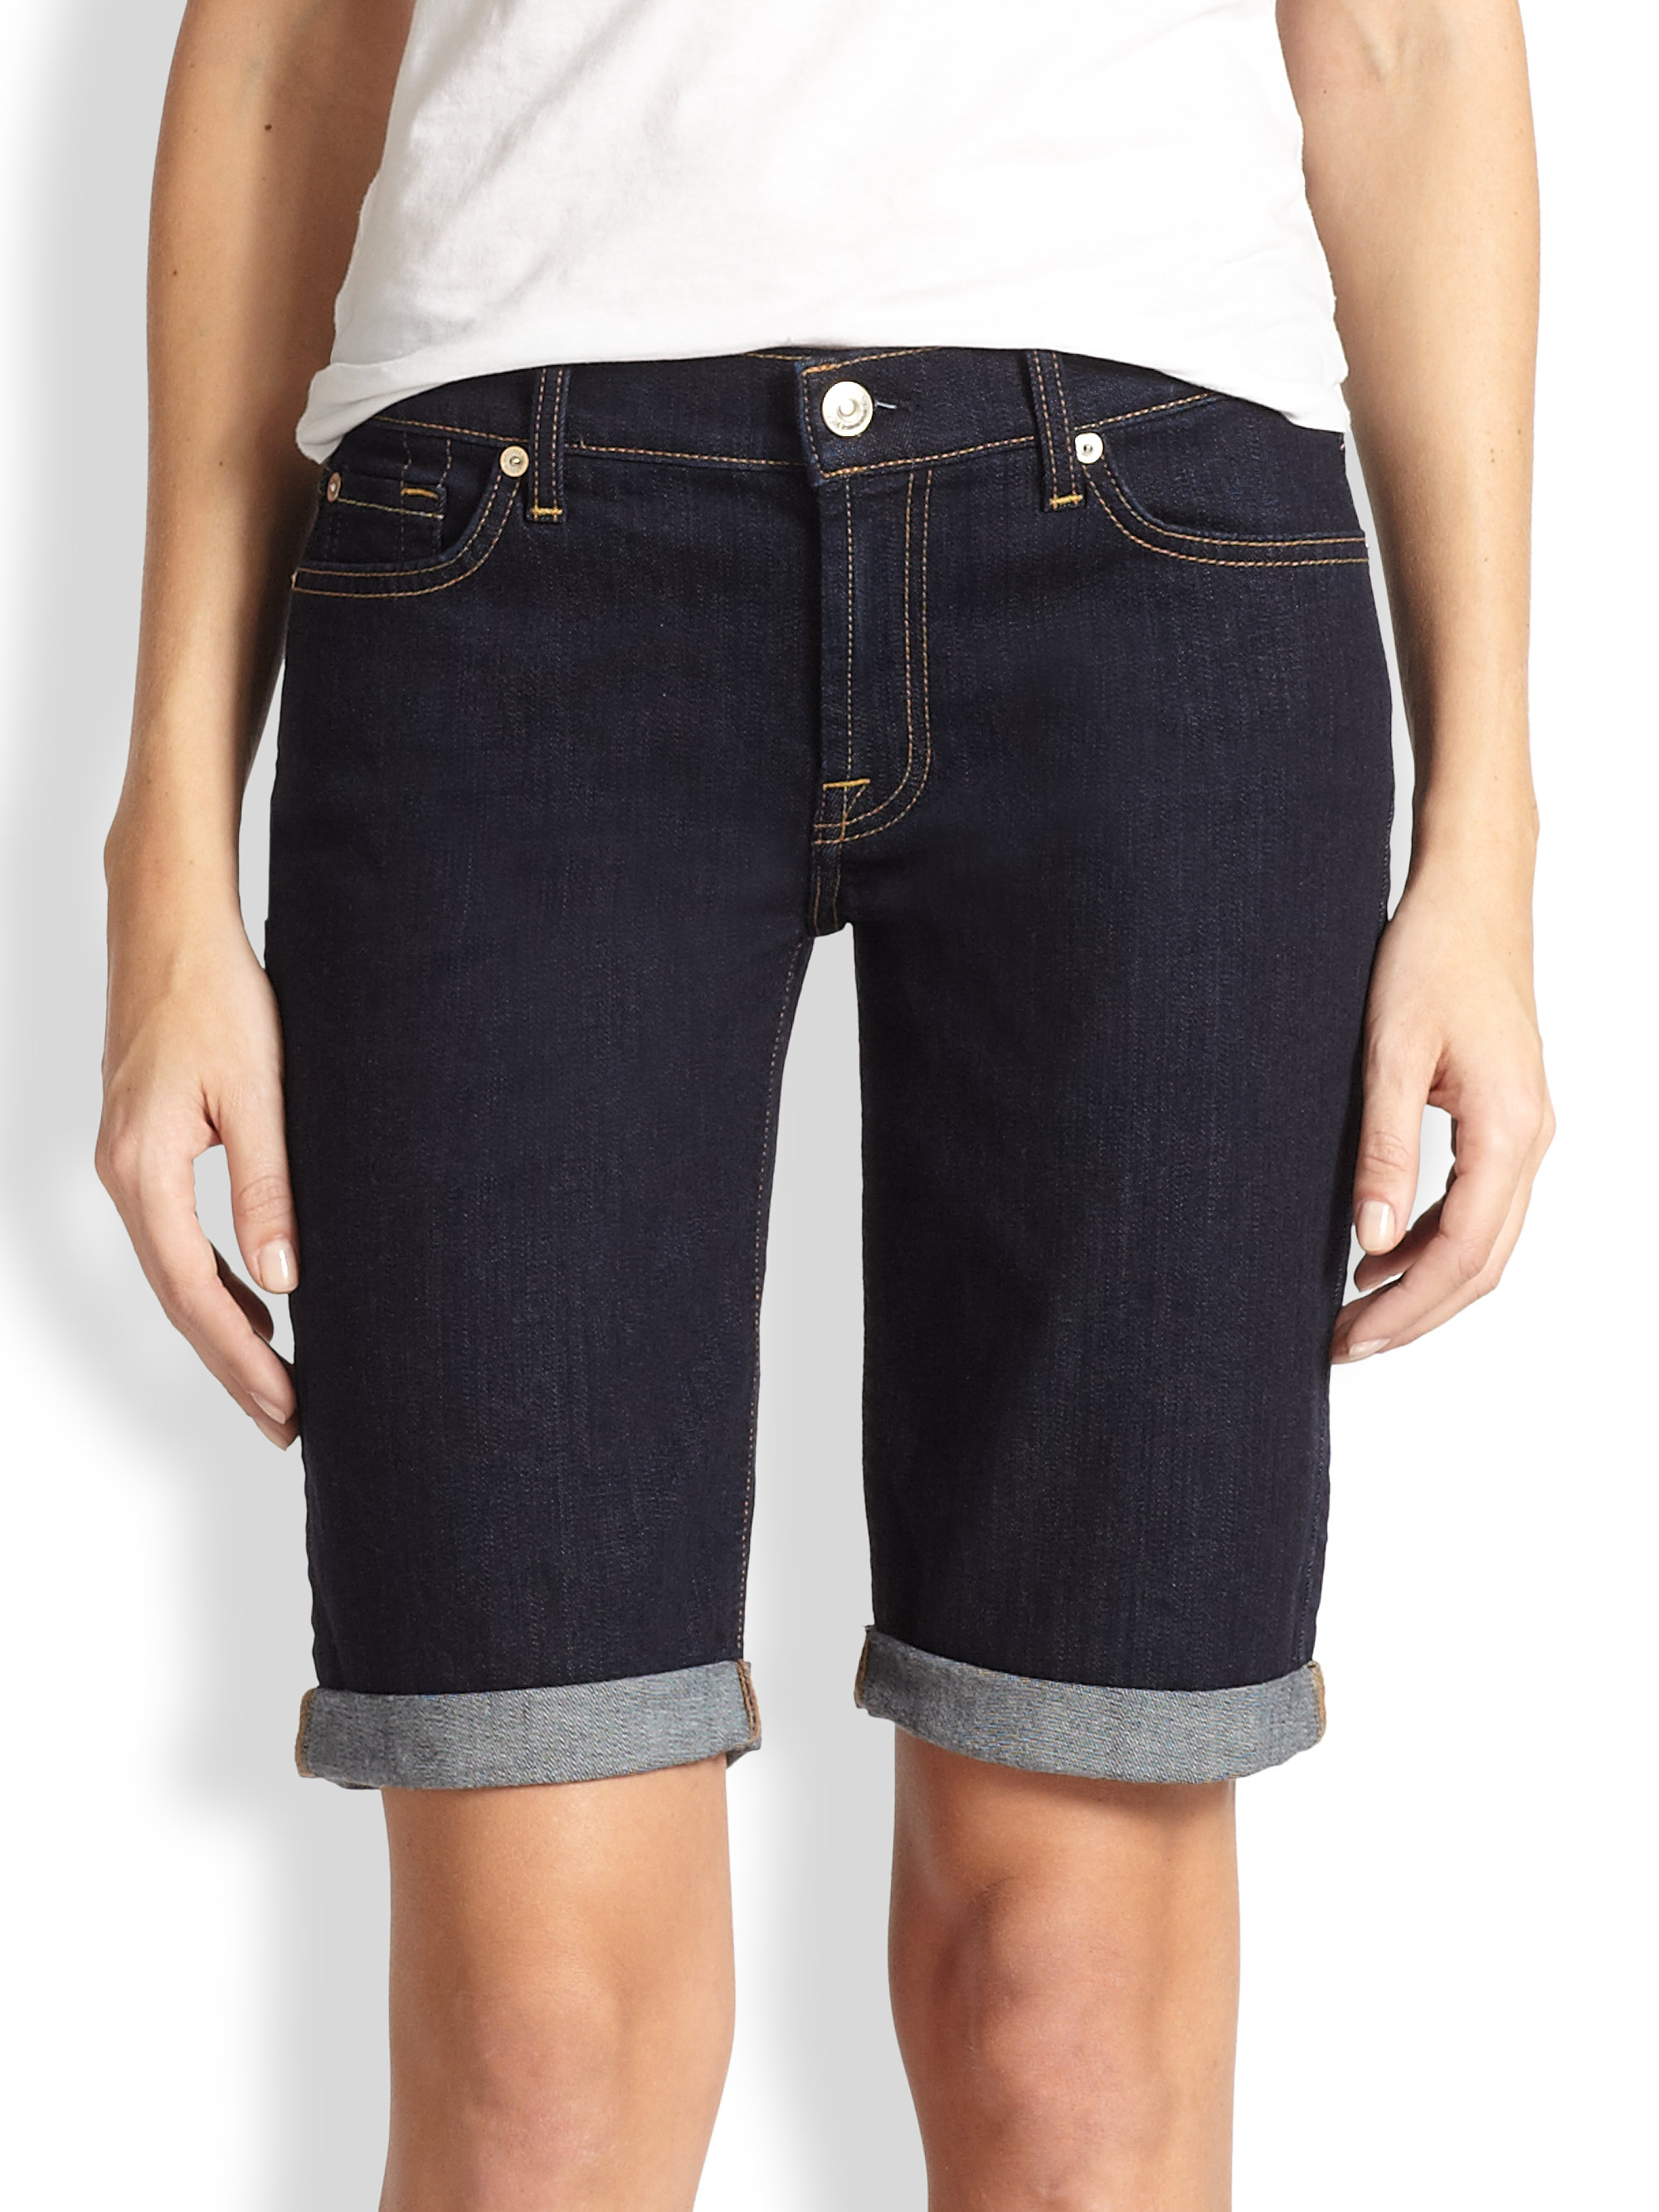 Lyst - 7 For All Mankind Stretch Denim Bermuda Shorts in Blue